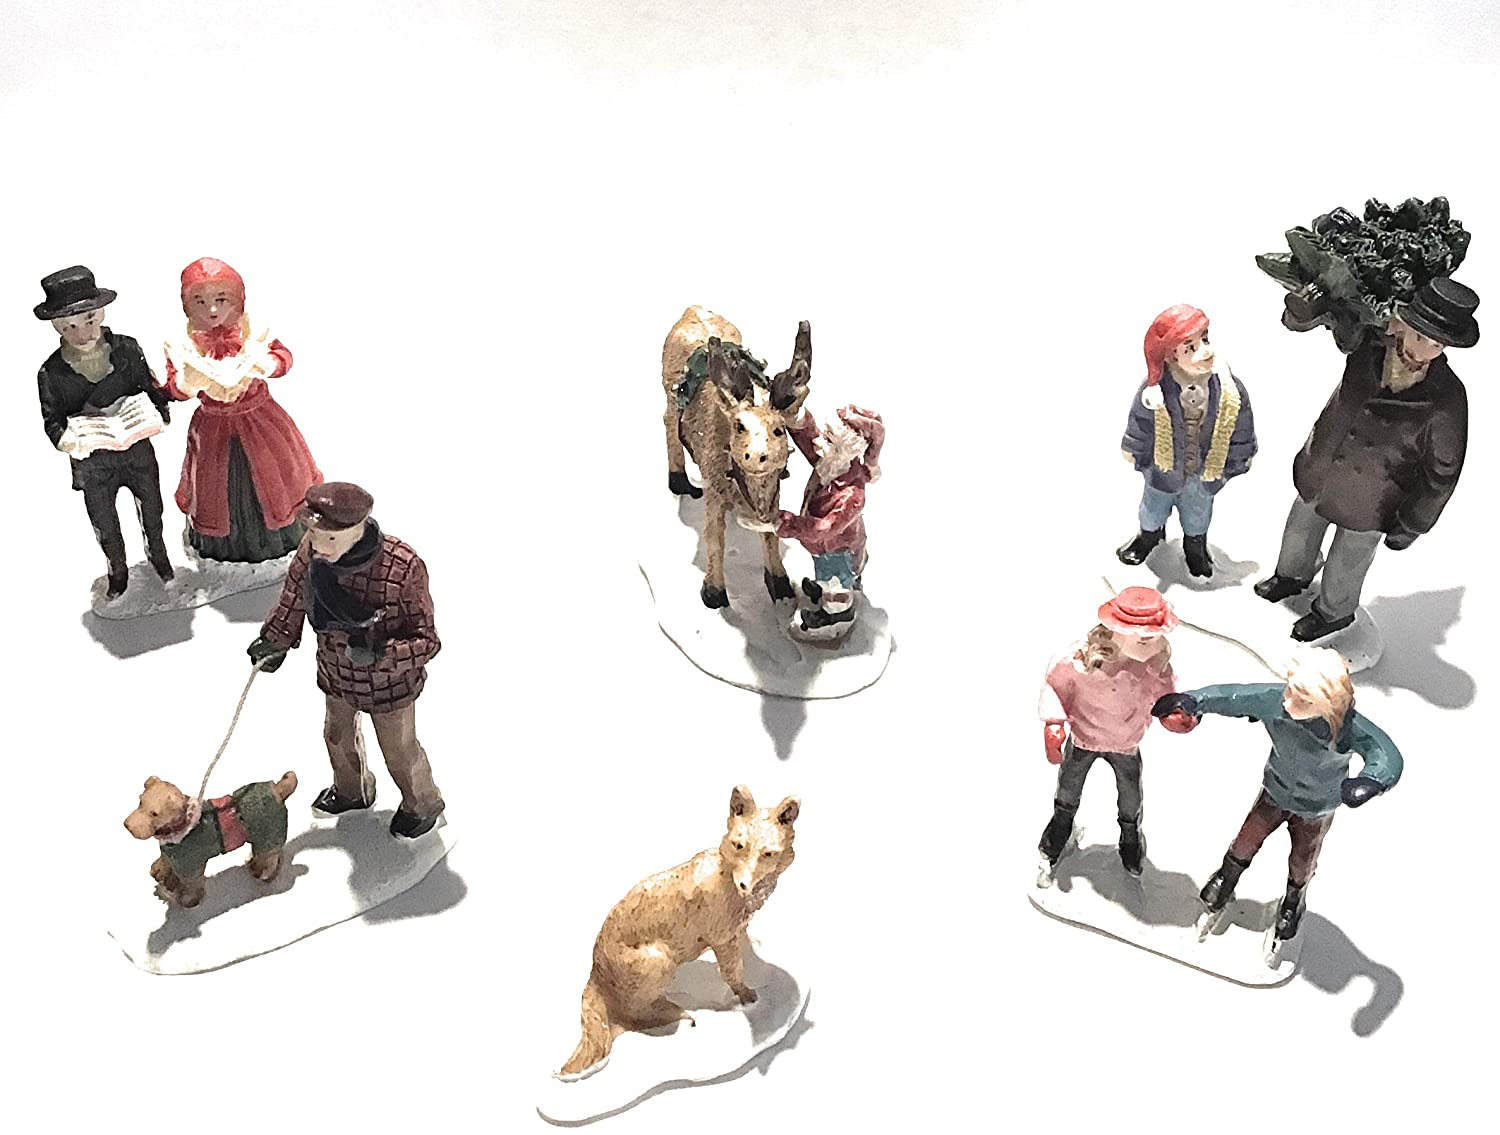 Man and Boy carrying Christmas Tree and a Reindeer with Elf Fox DIY Christmas Village Miniature 6piece Villager Accessories Set: Man Walking Dog Couple Caroling Girls Ice Skating